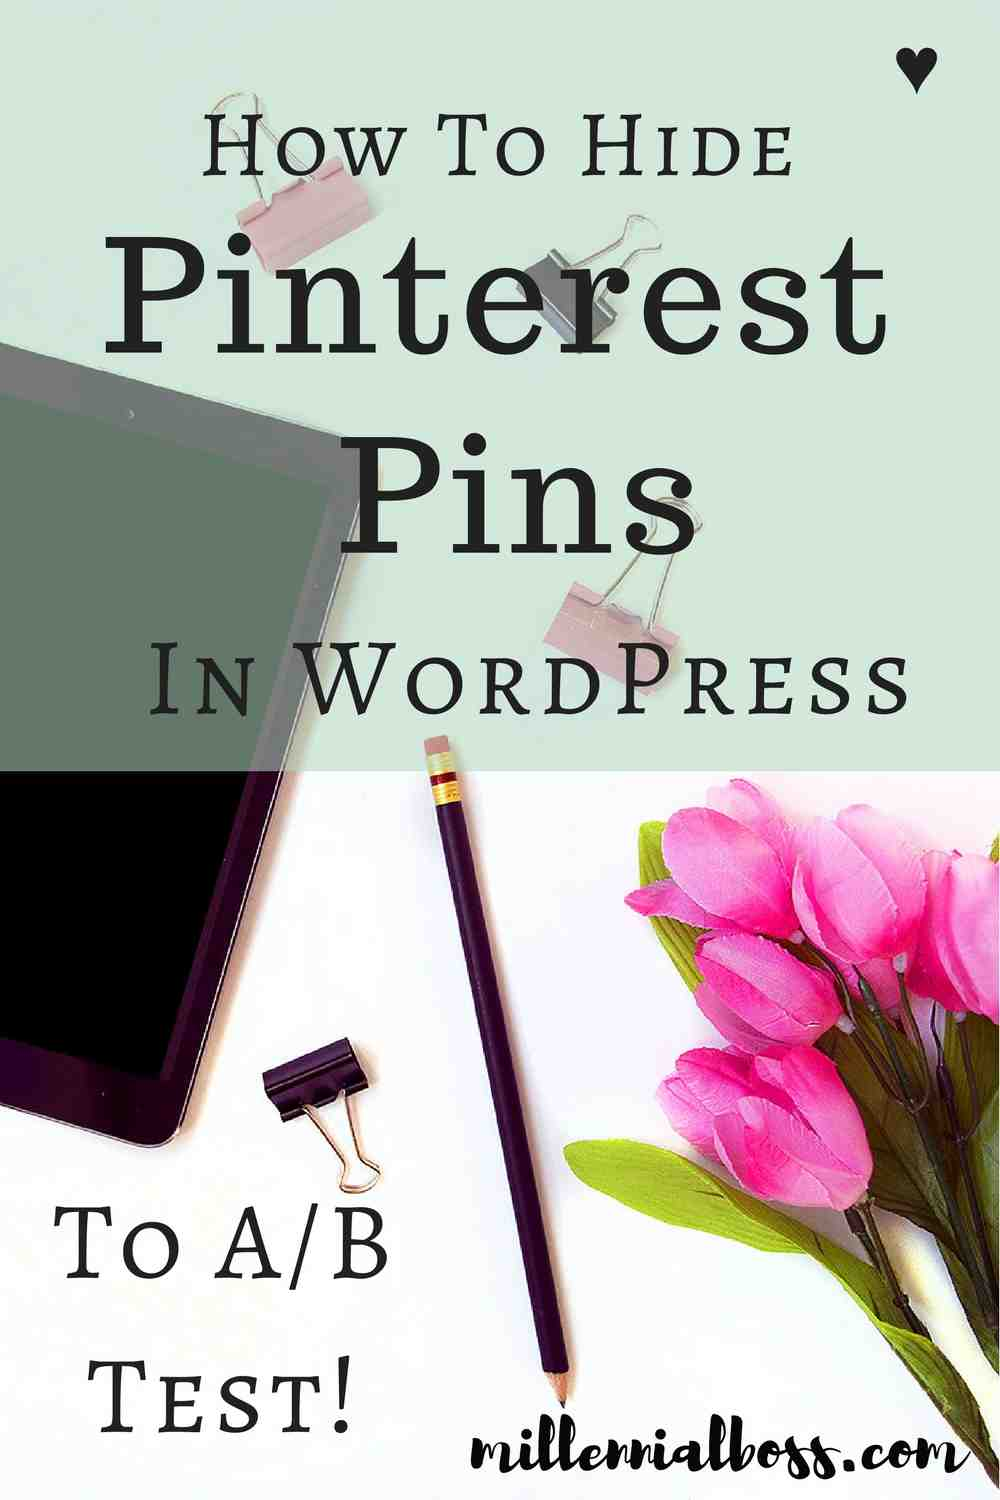 Super easy to do! I'm not A/B testing all of my Pinterest images and seeing good results.